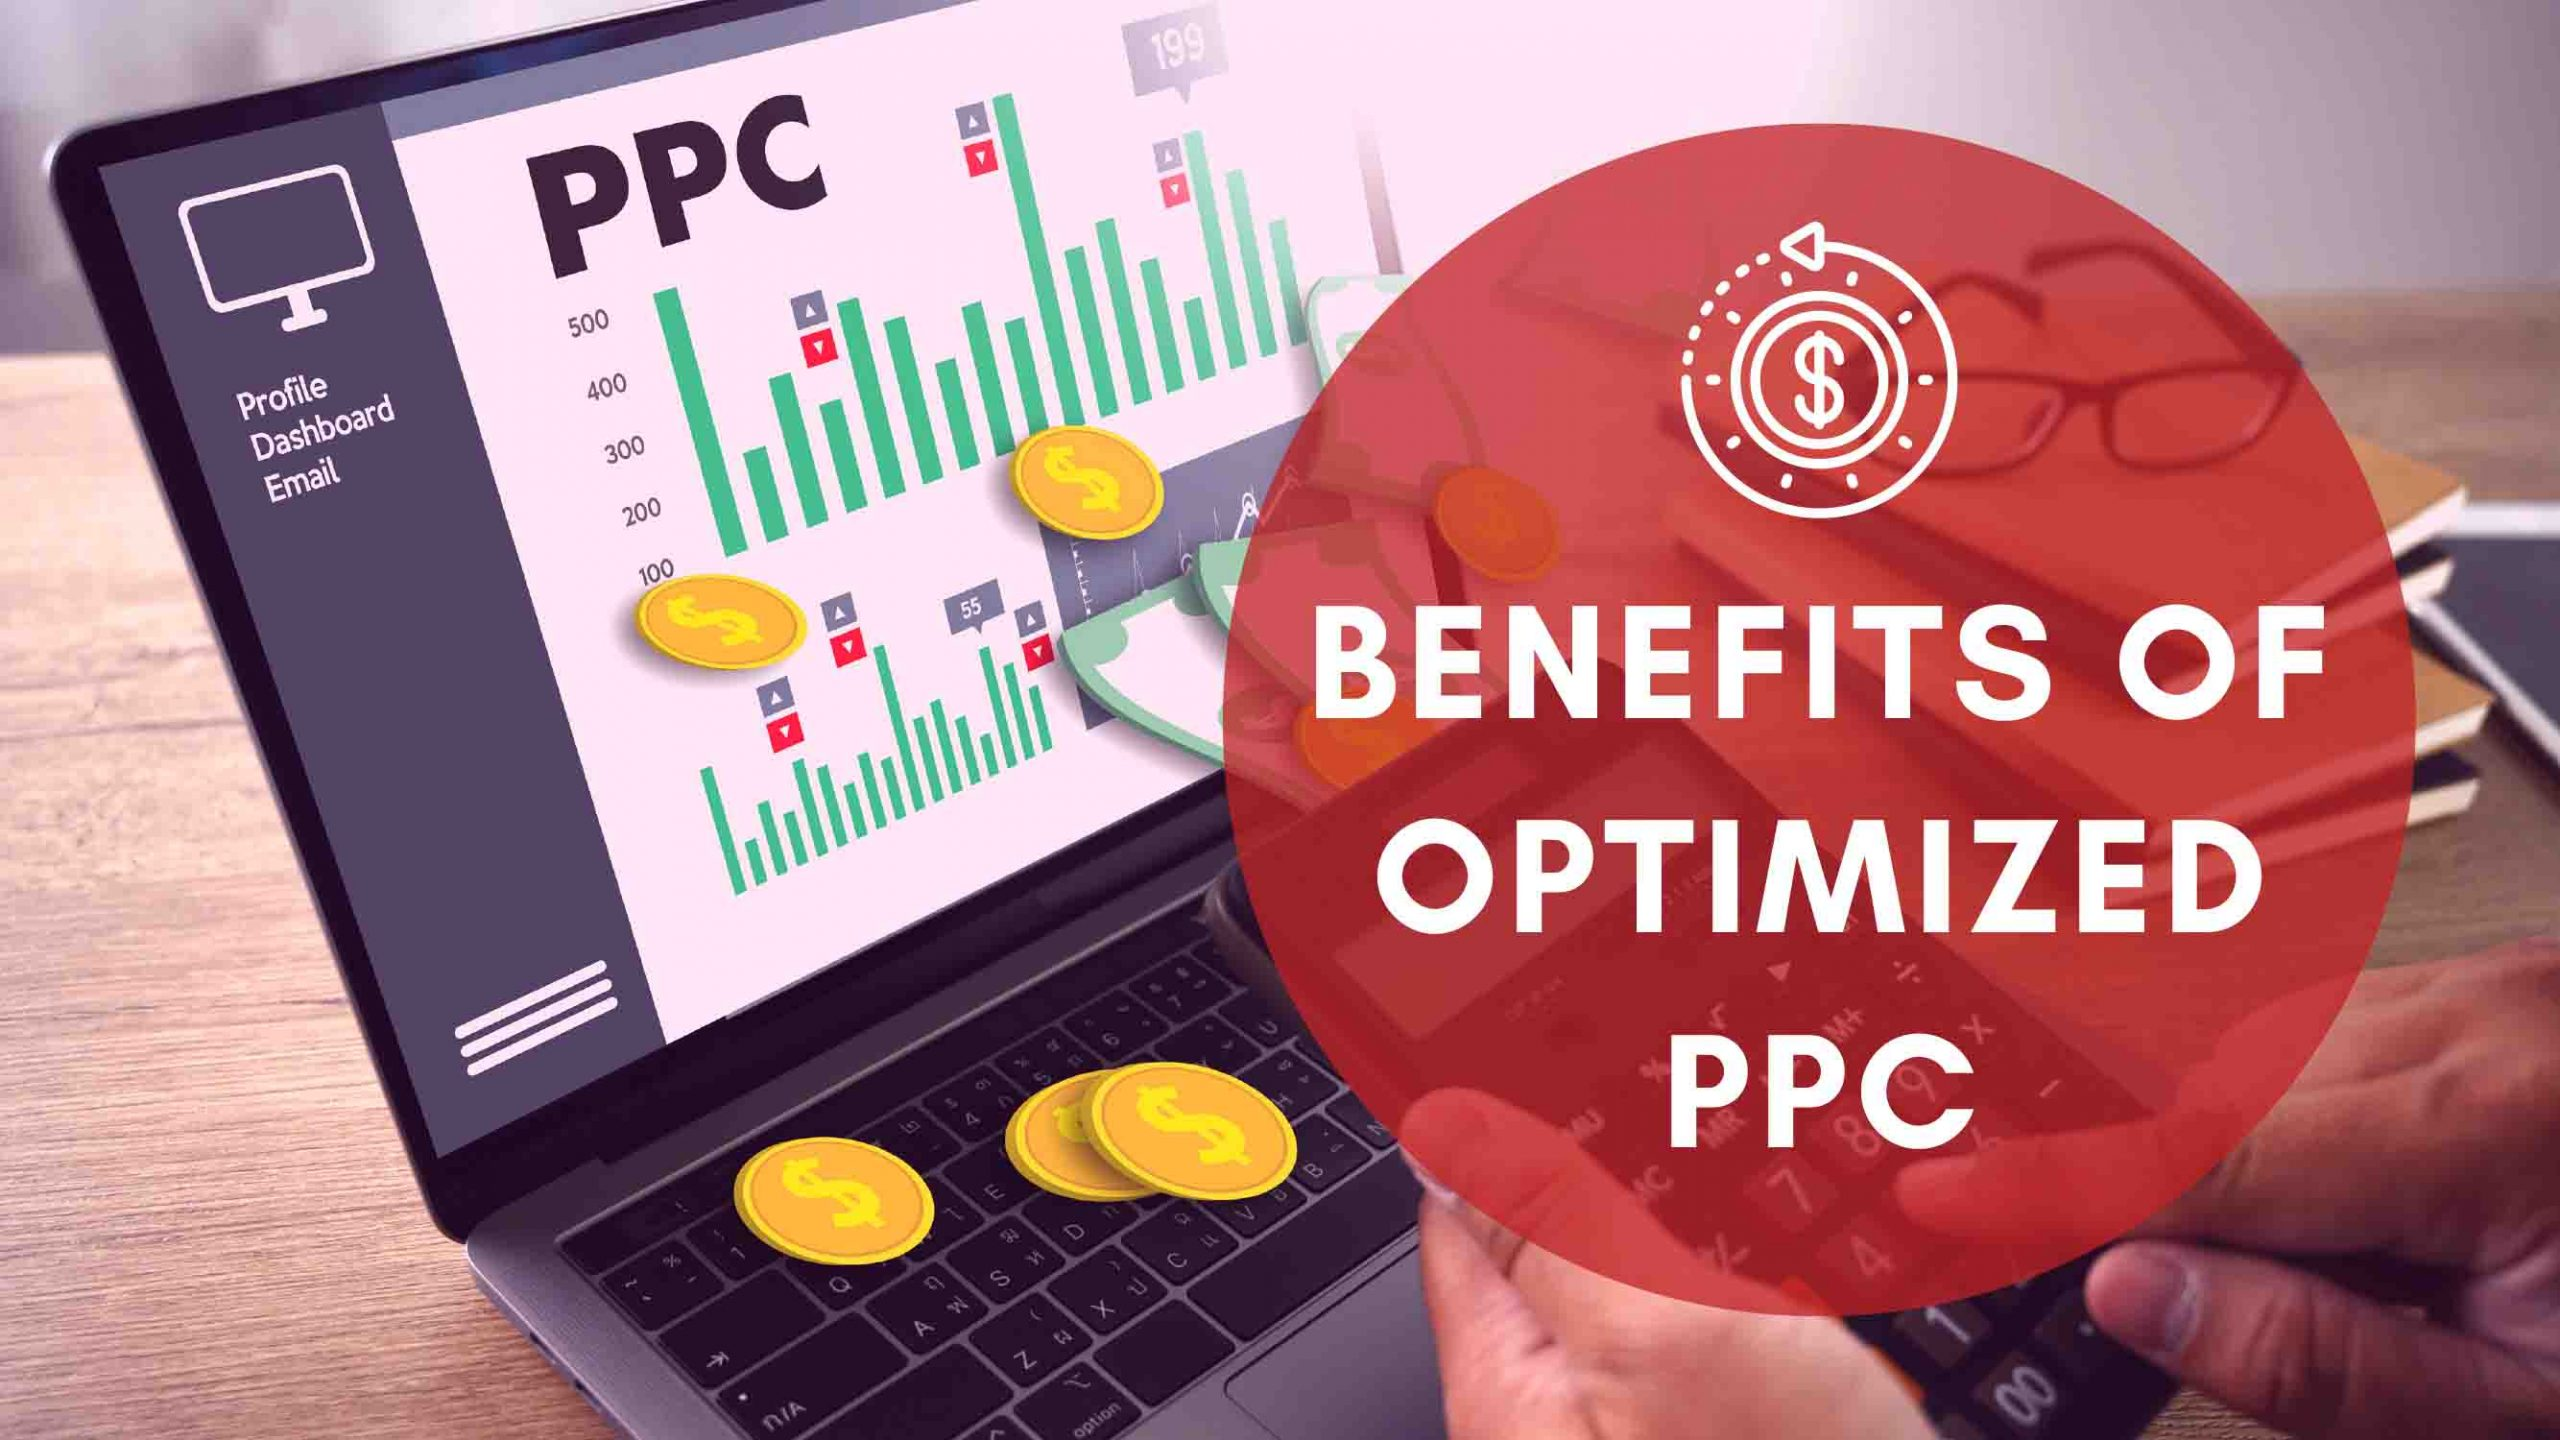 Benefits Of Optimized PPC - Freelancers HUB